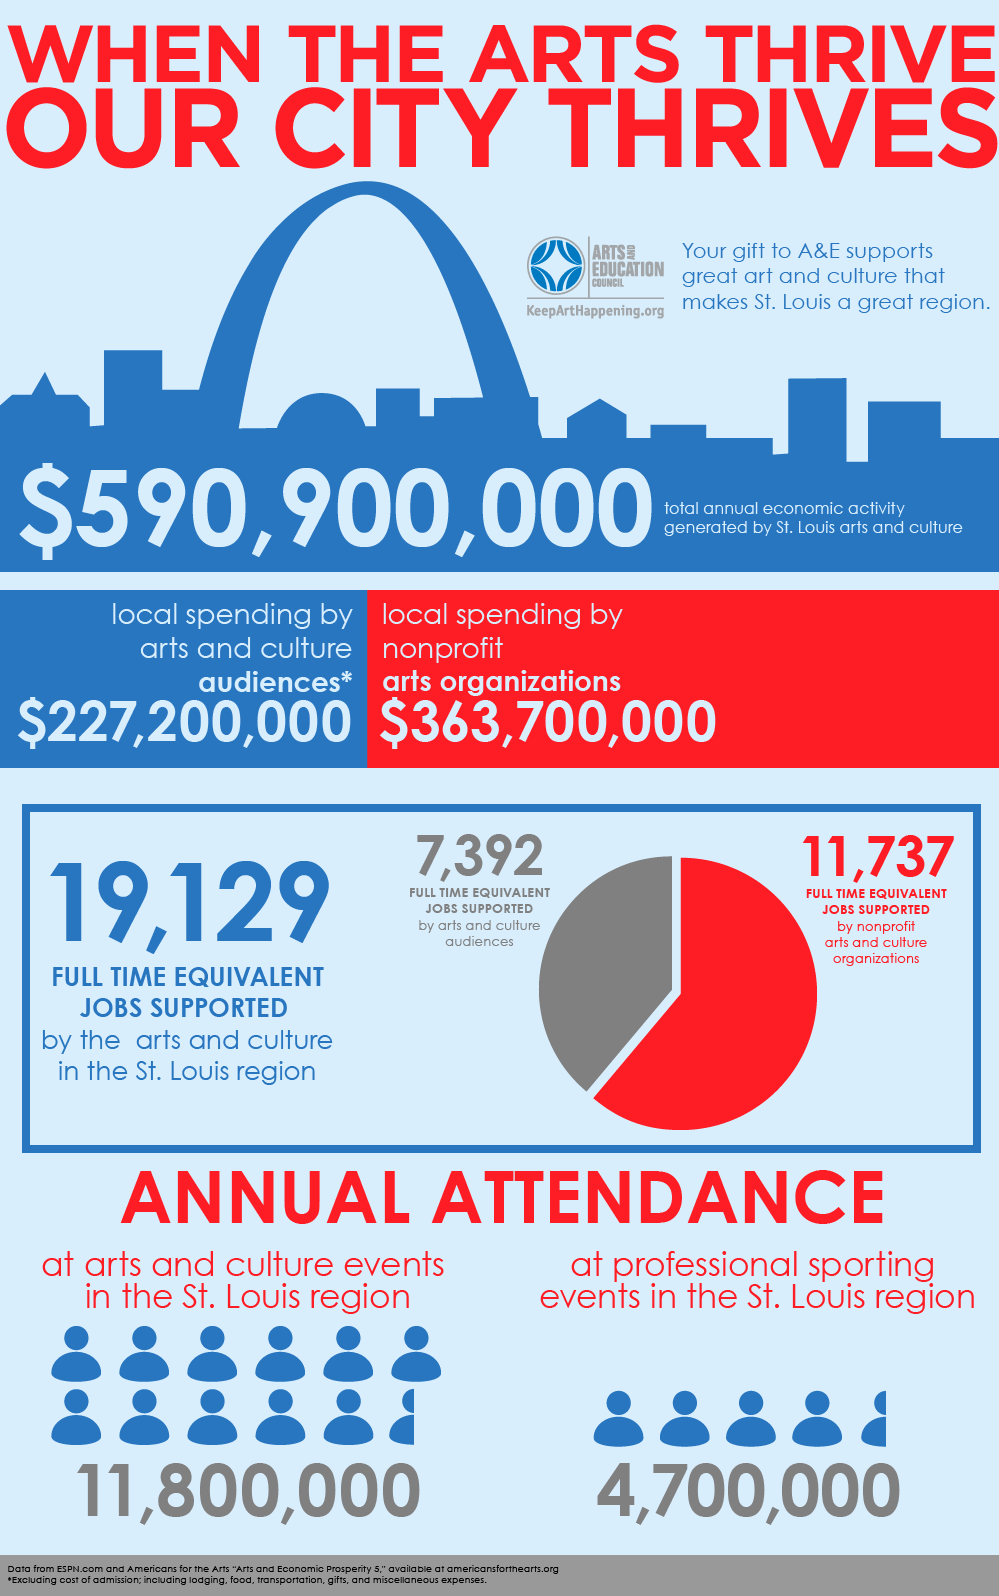 Economic Impact of Arts in St. Louis region per Arts and Economic Prosperity 5 report